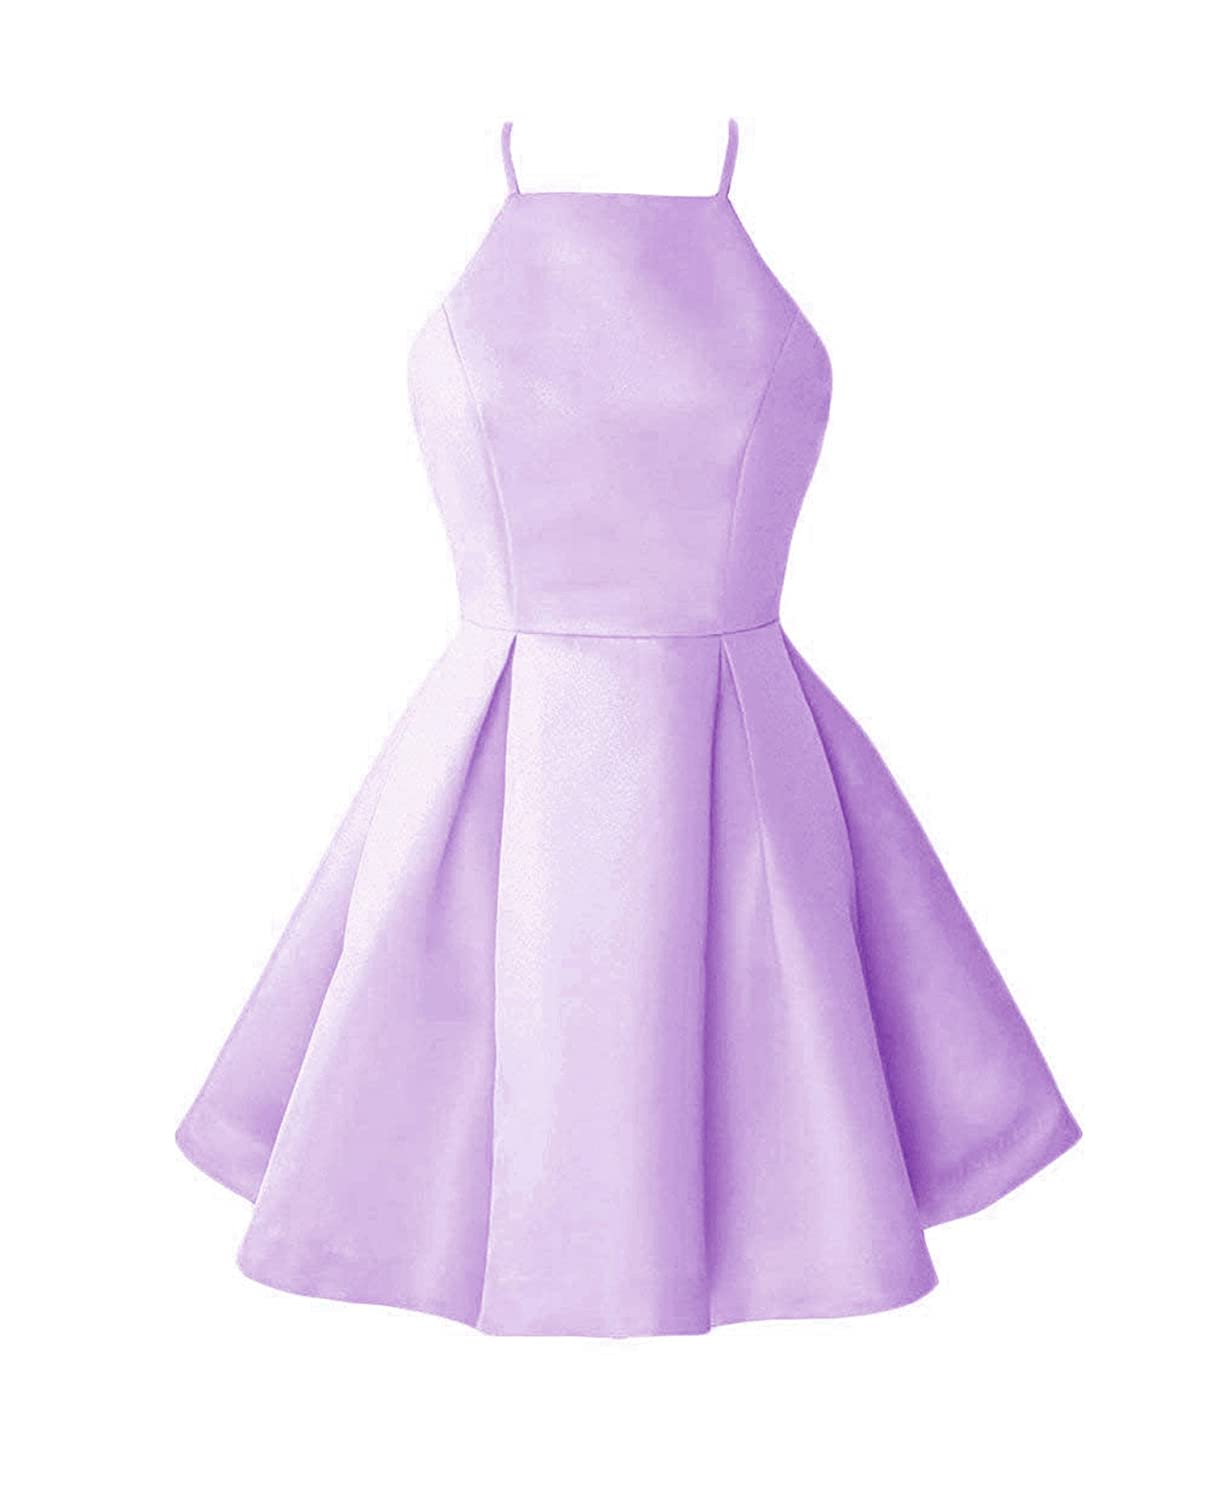 Bpurplec WHZZ Womens ALine Homecoming Dresses Mini Short Cocktail Party Dresses